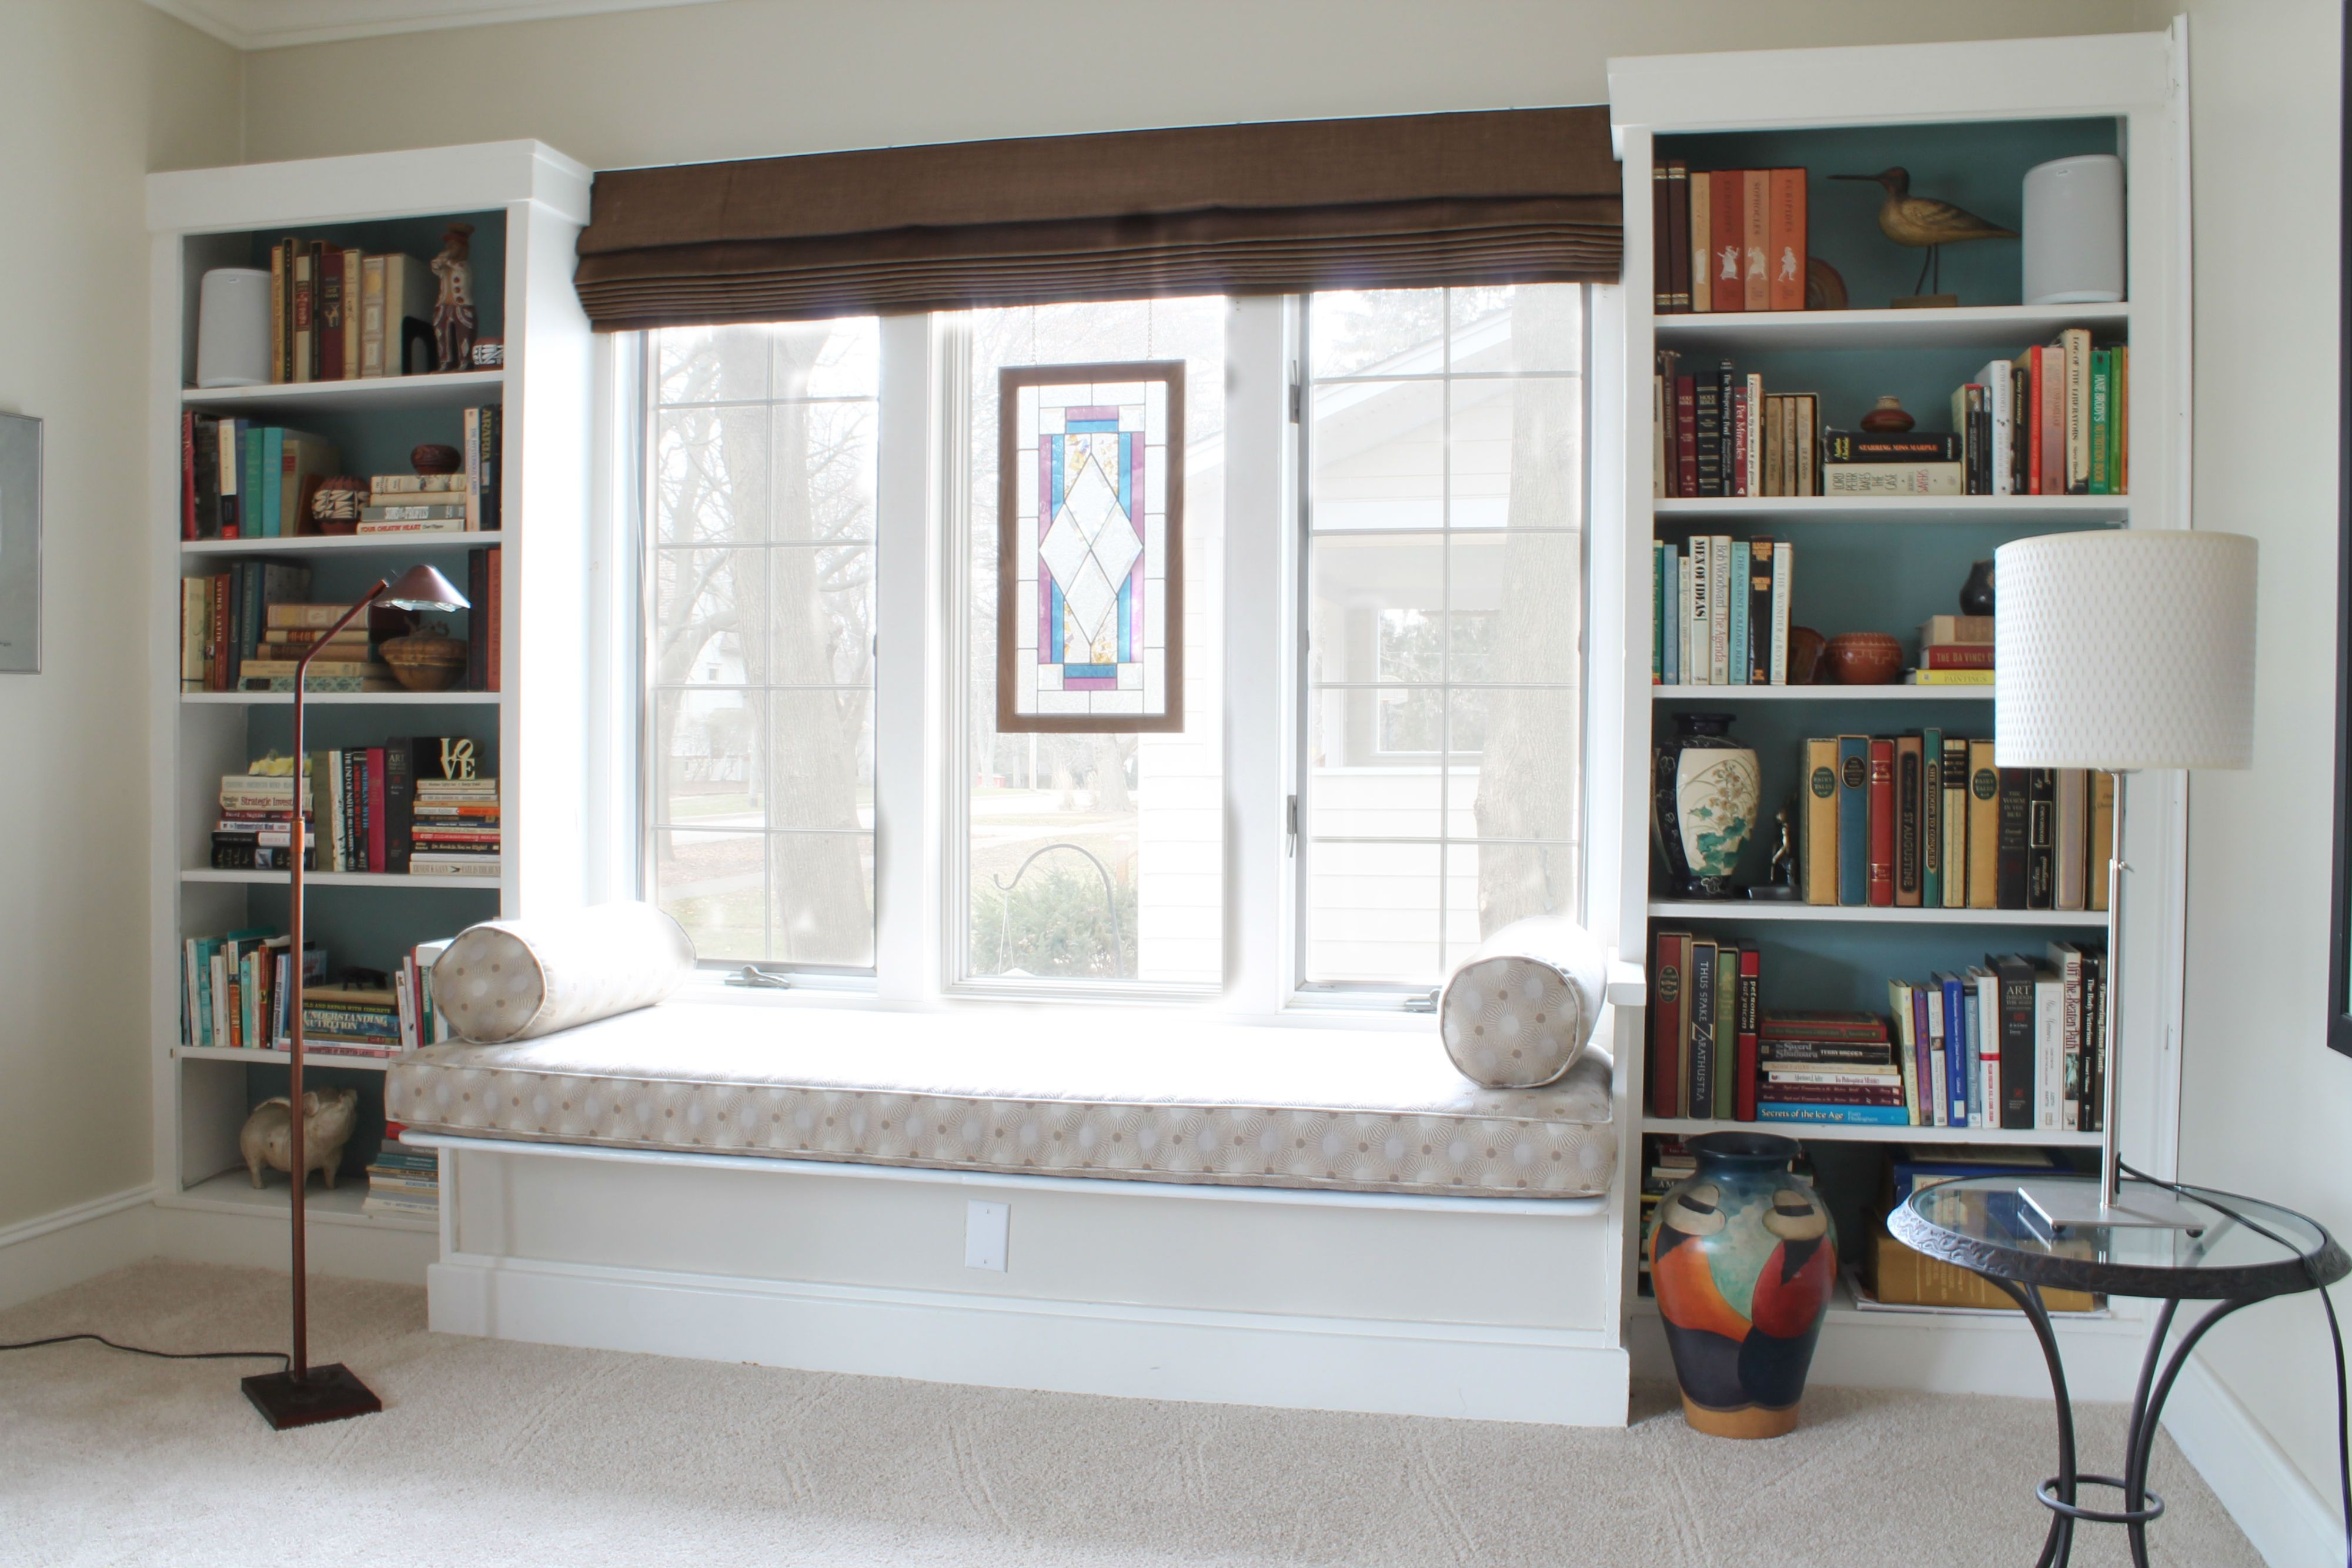 Window Seat Bookshelf Built In Window Seat With Bookcases Chicago Redesign Chicago